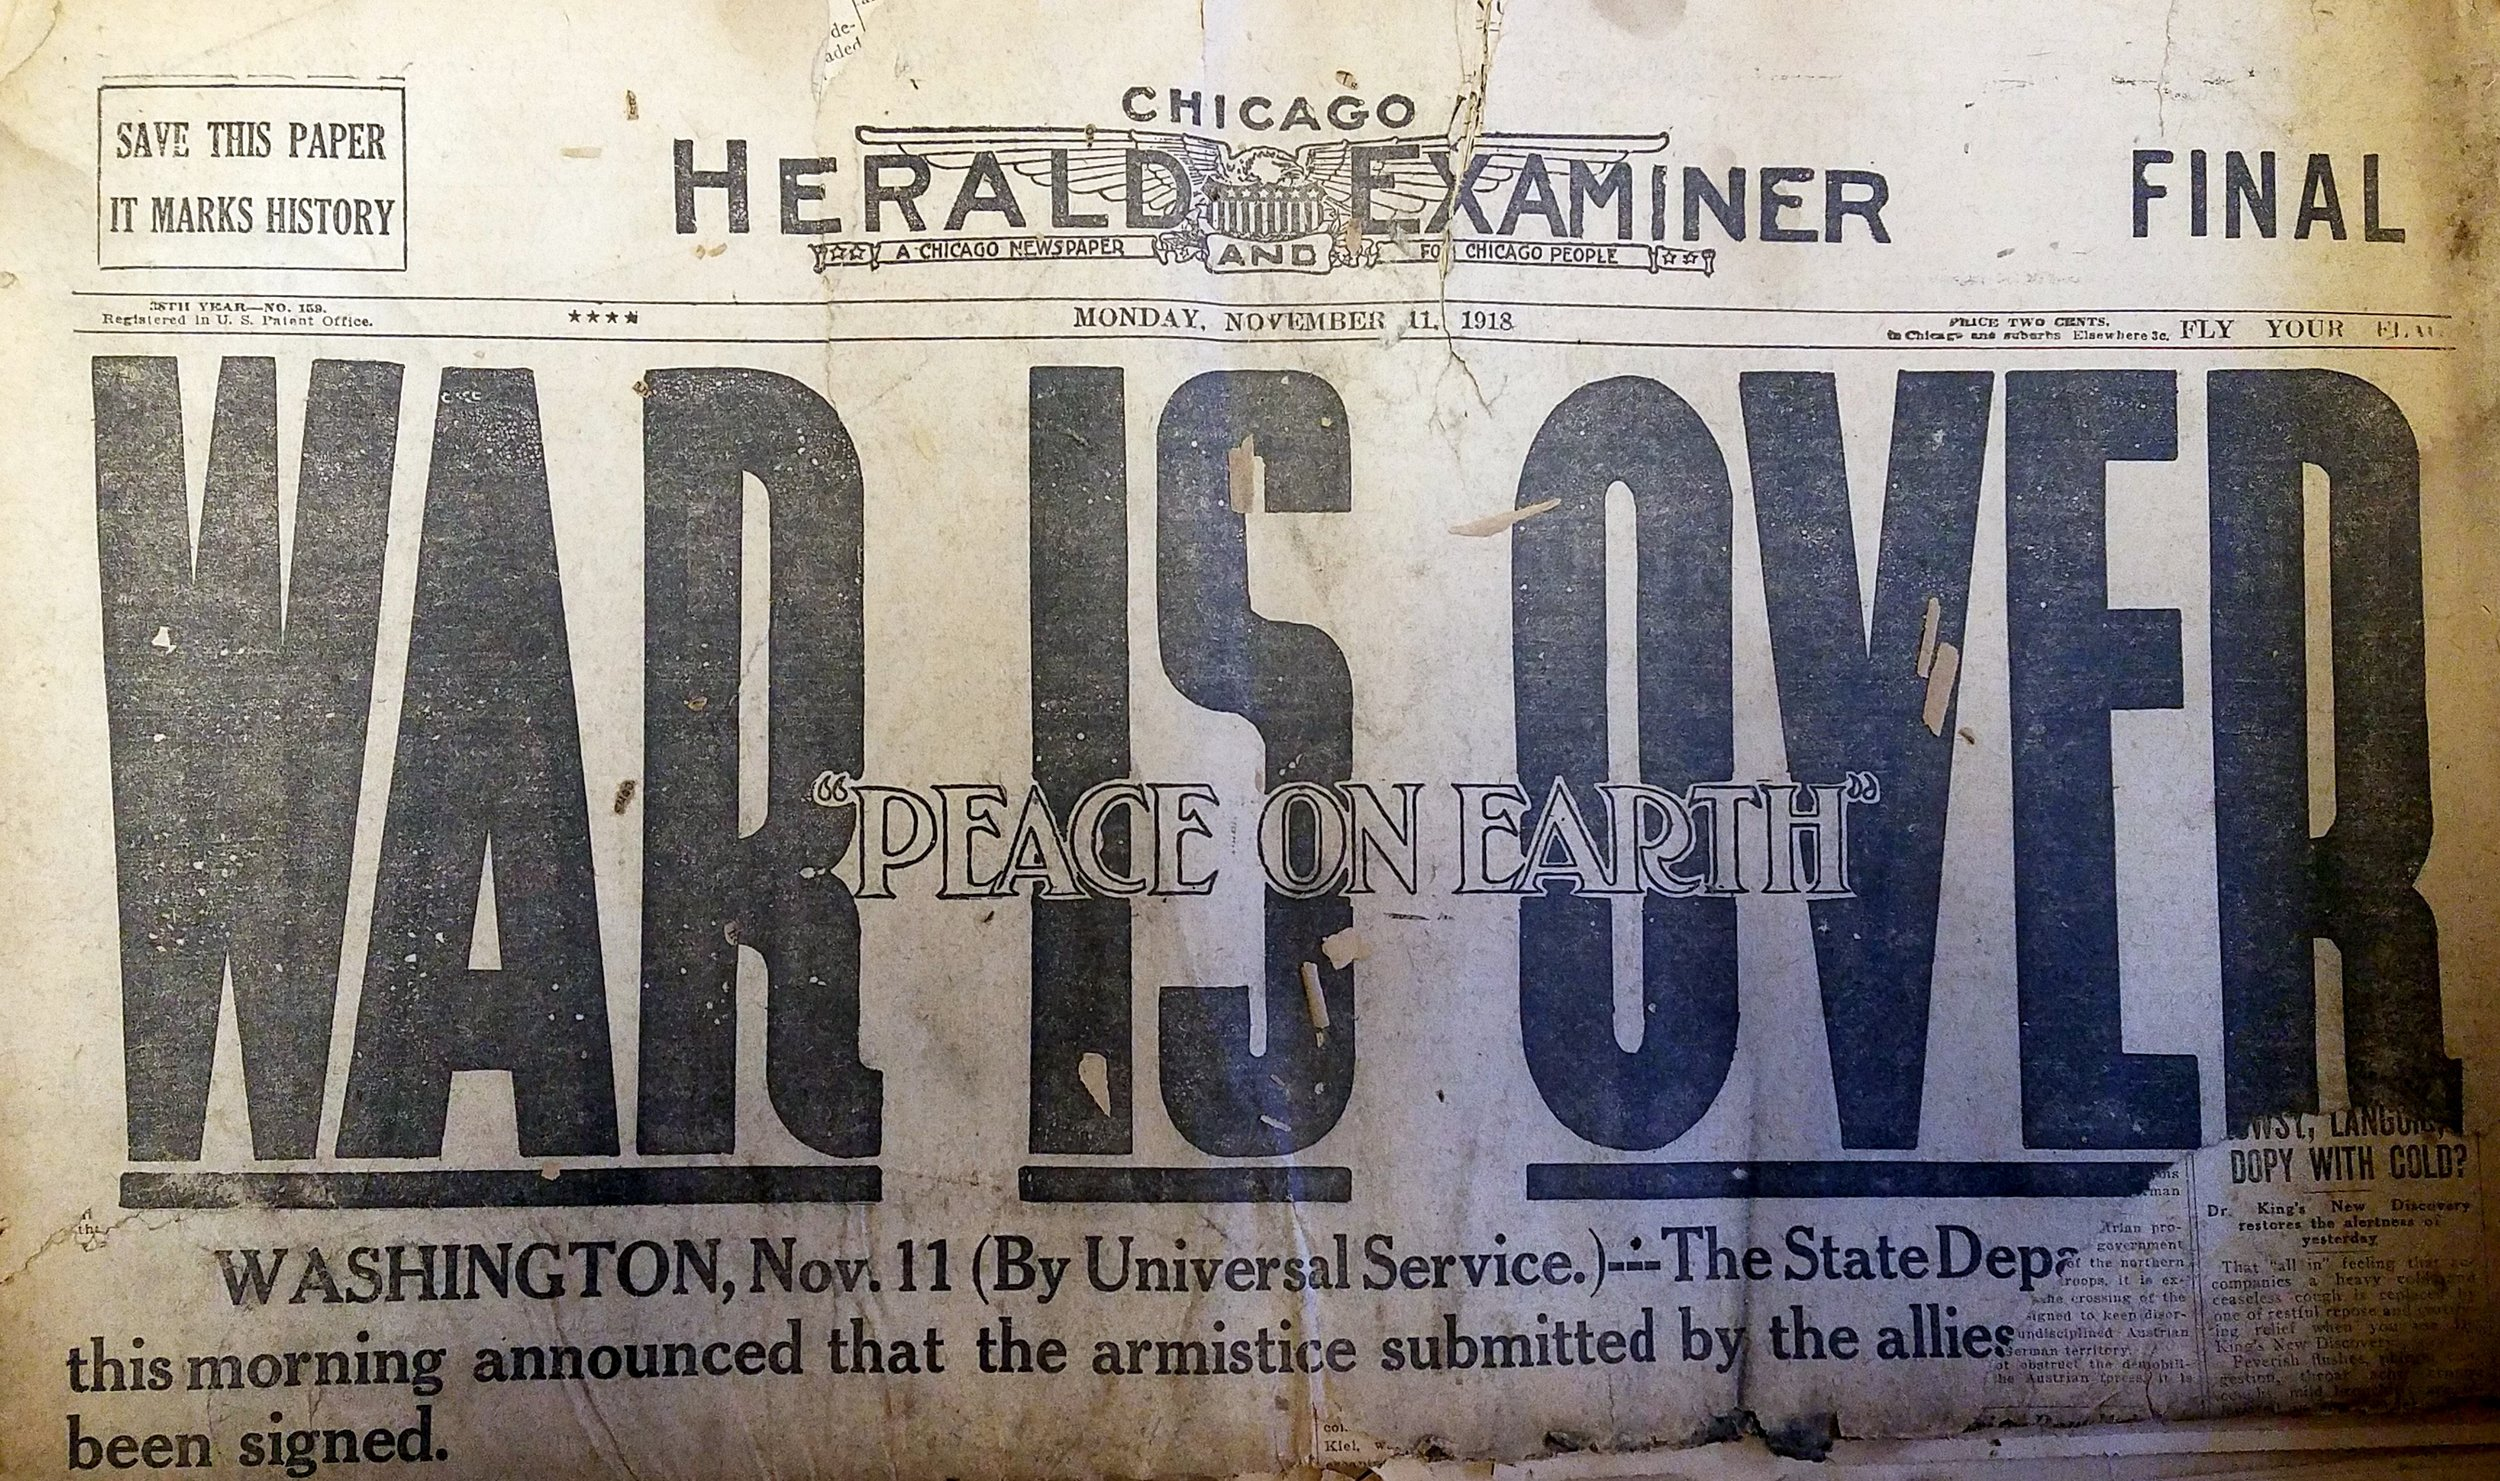 The front page of the Chicago Herald-Examiner on November 11, 1918.